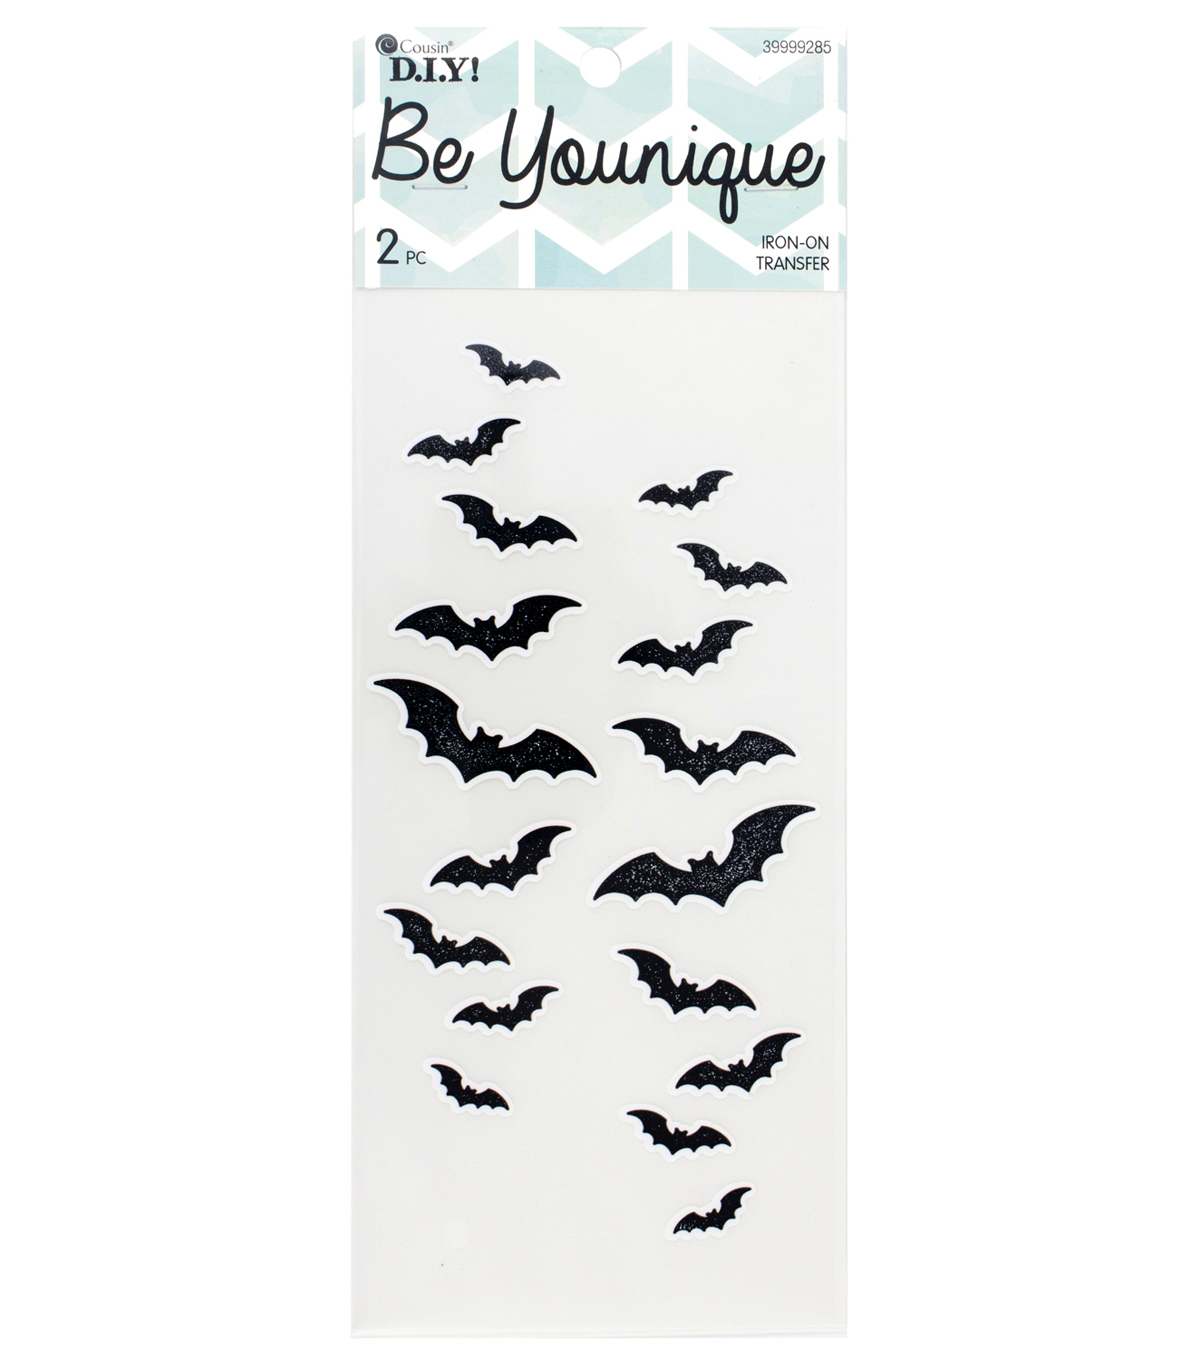 Cousin® DIY Be Younique 2 Pack Sleeve Iron-On Transfers-Bats